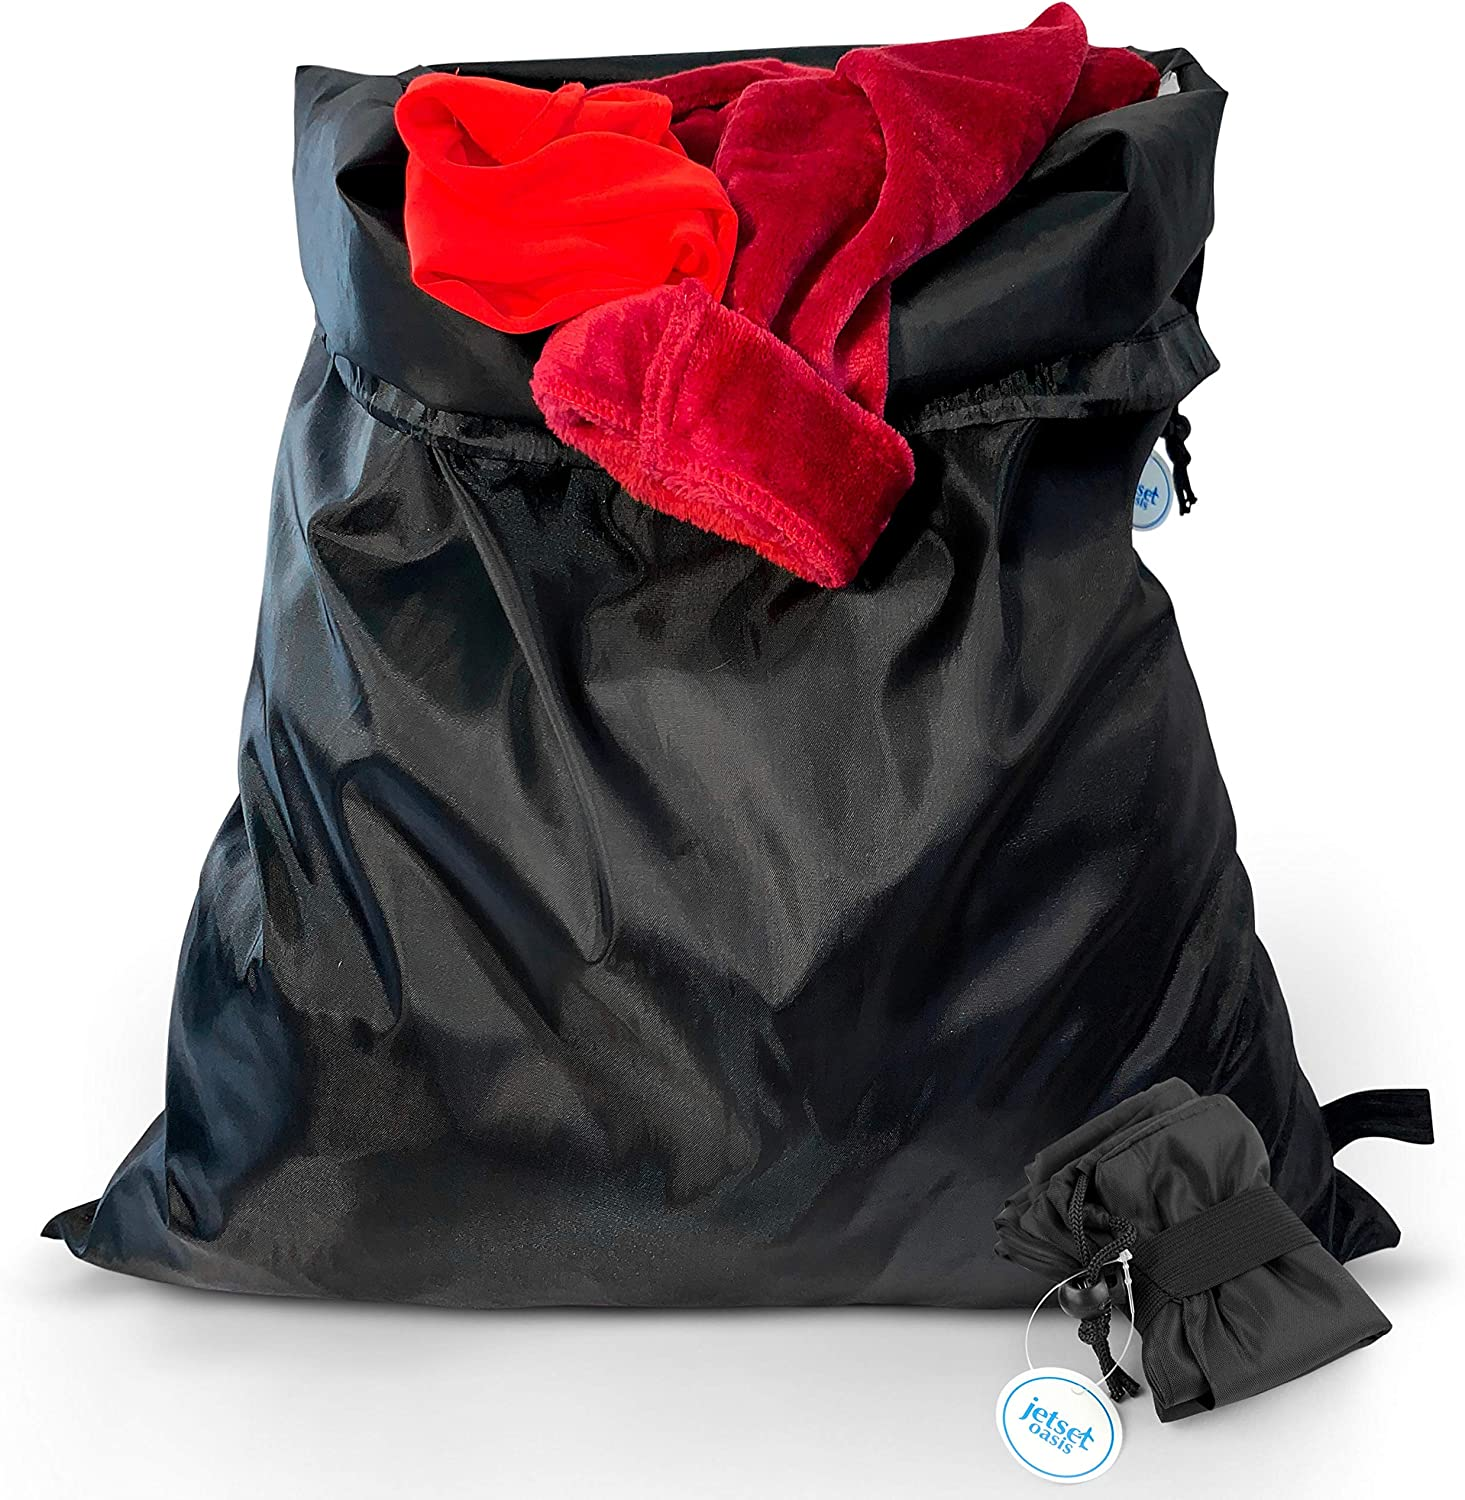 """Jetset Oasis 2 Pack Travel Laundry Bags – Premium Thick Nylon· Large Heavy Duty · Ultra Compact for Luggage · Lightweight · Machine Washable · Drawstring Closure -Best For Travel Cruises Gym 24"""" x 30"""""""